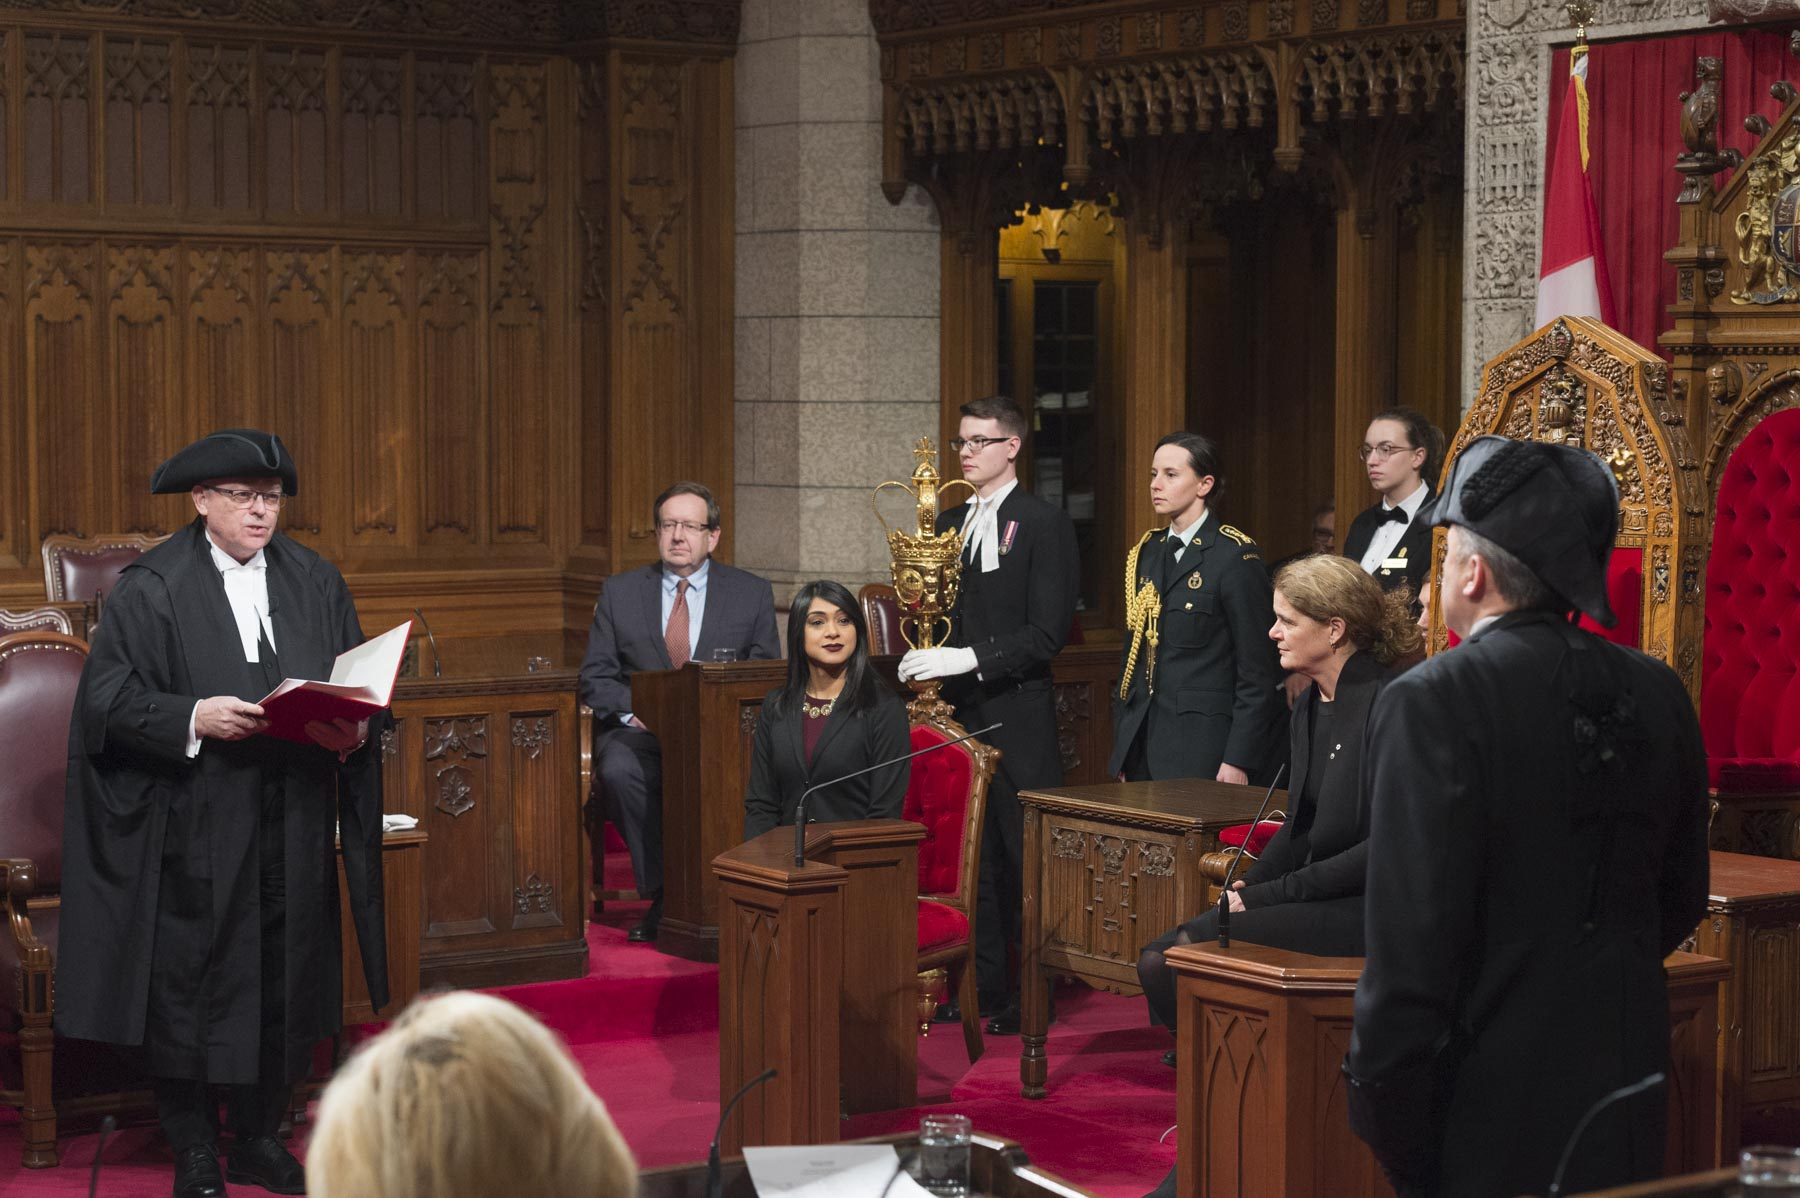 Her Excellency attended a traditional Royal Assent ceremony inside the Senate, on Parliament Hill, on December 12, 2017.